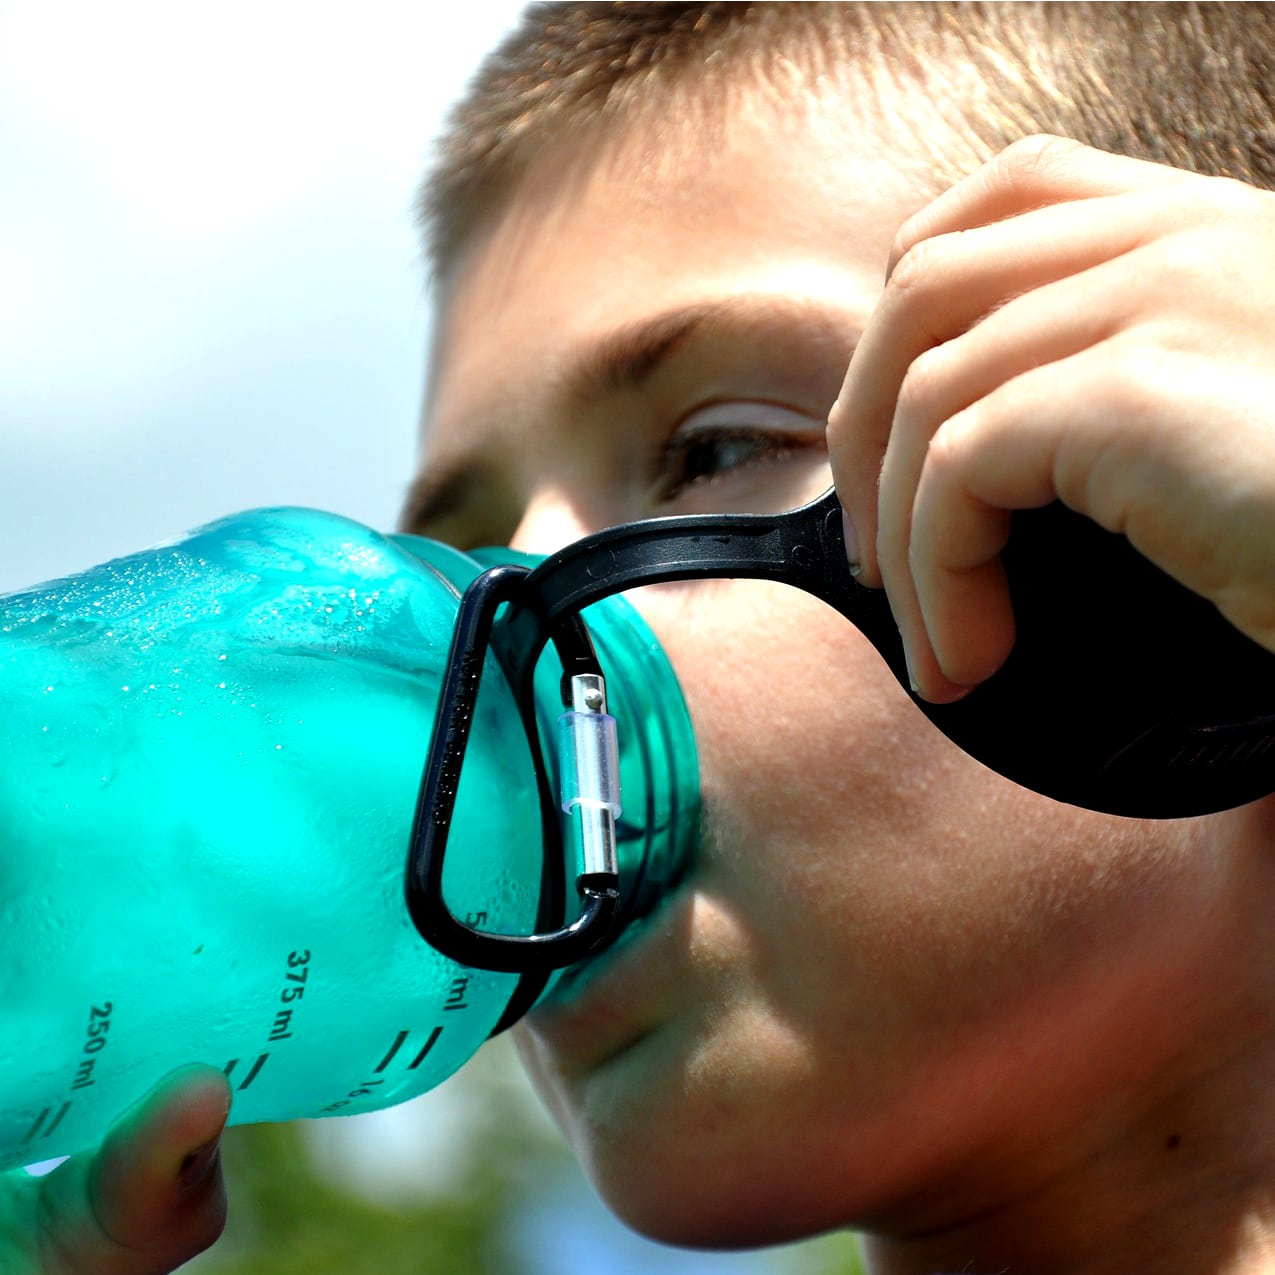 BPA's & the Endocrine System